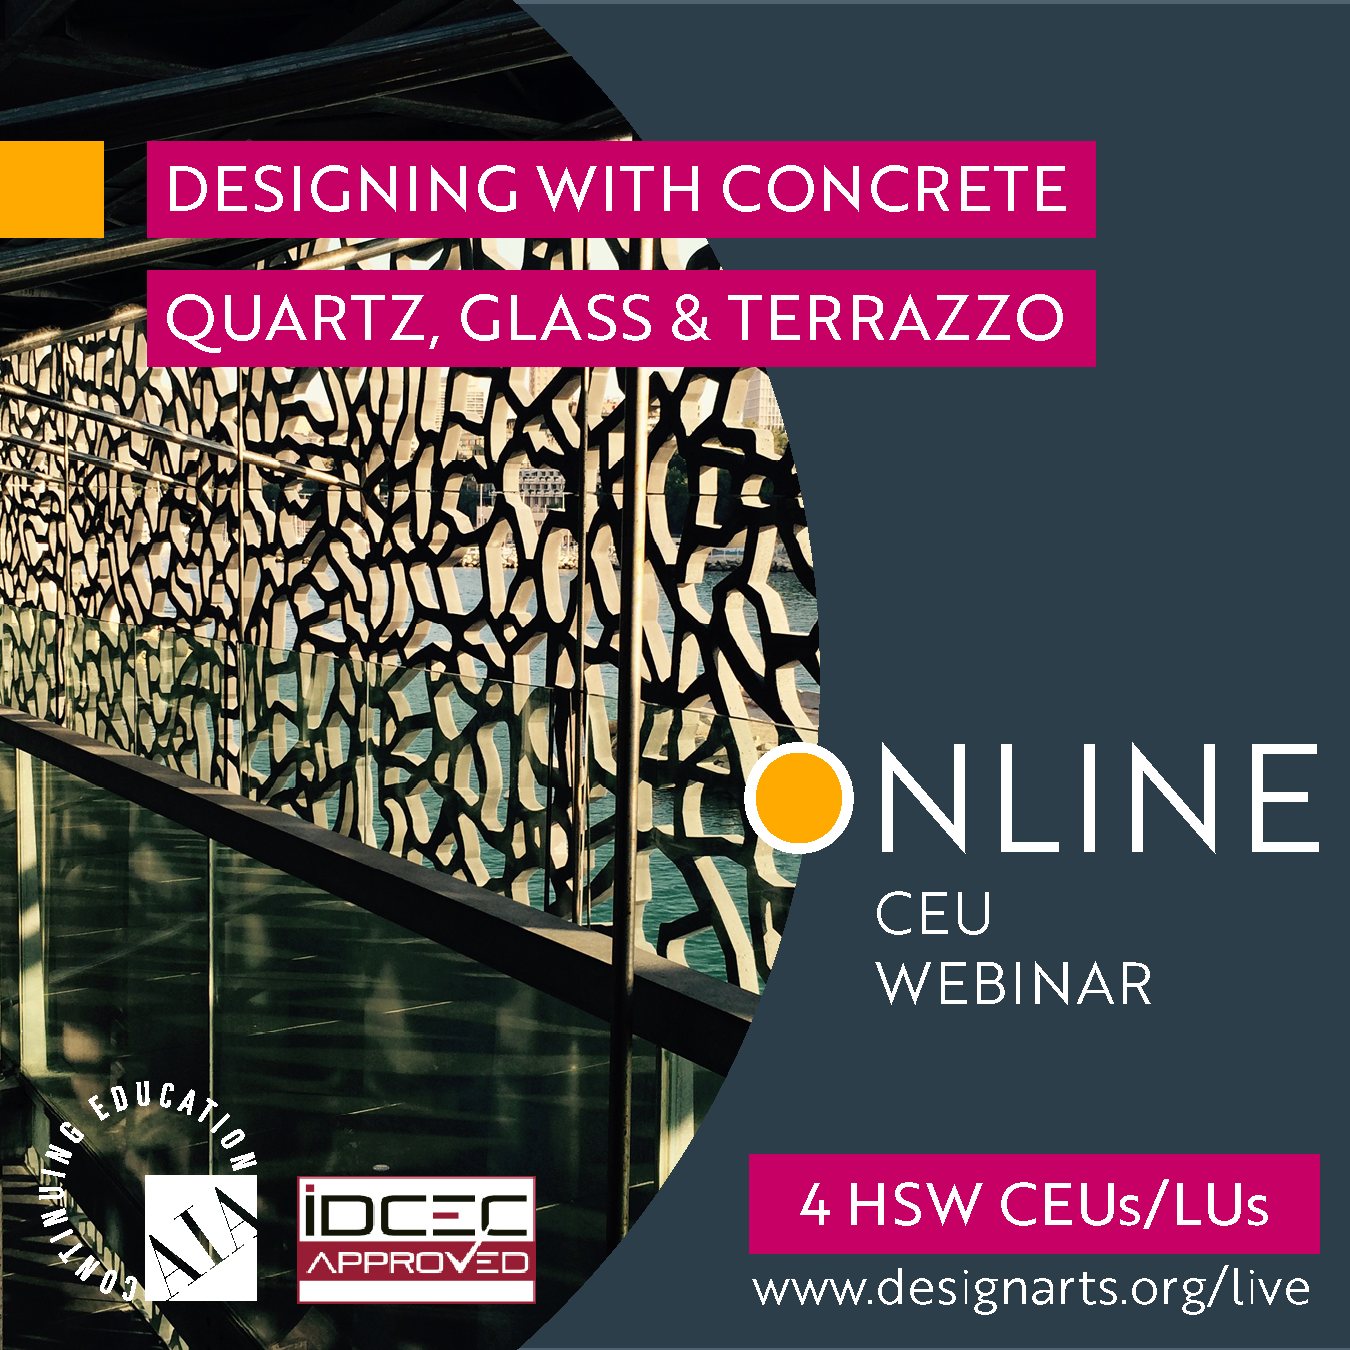 CEU: DESIGNING WITH CONCRETE QUARTZ GLASS & TERRAZZO